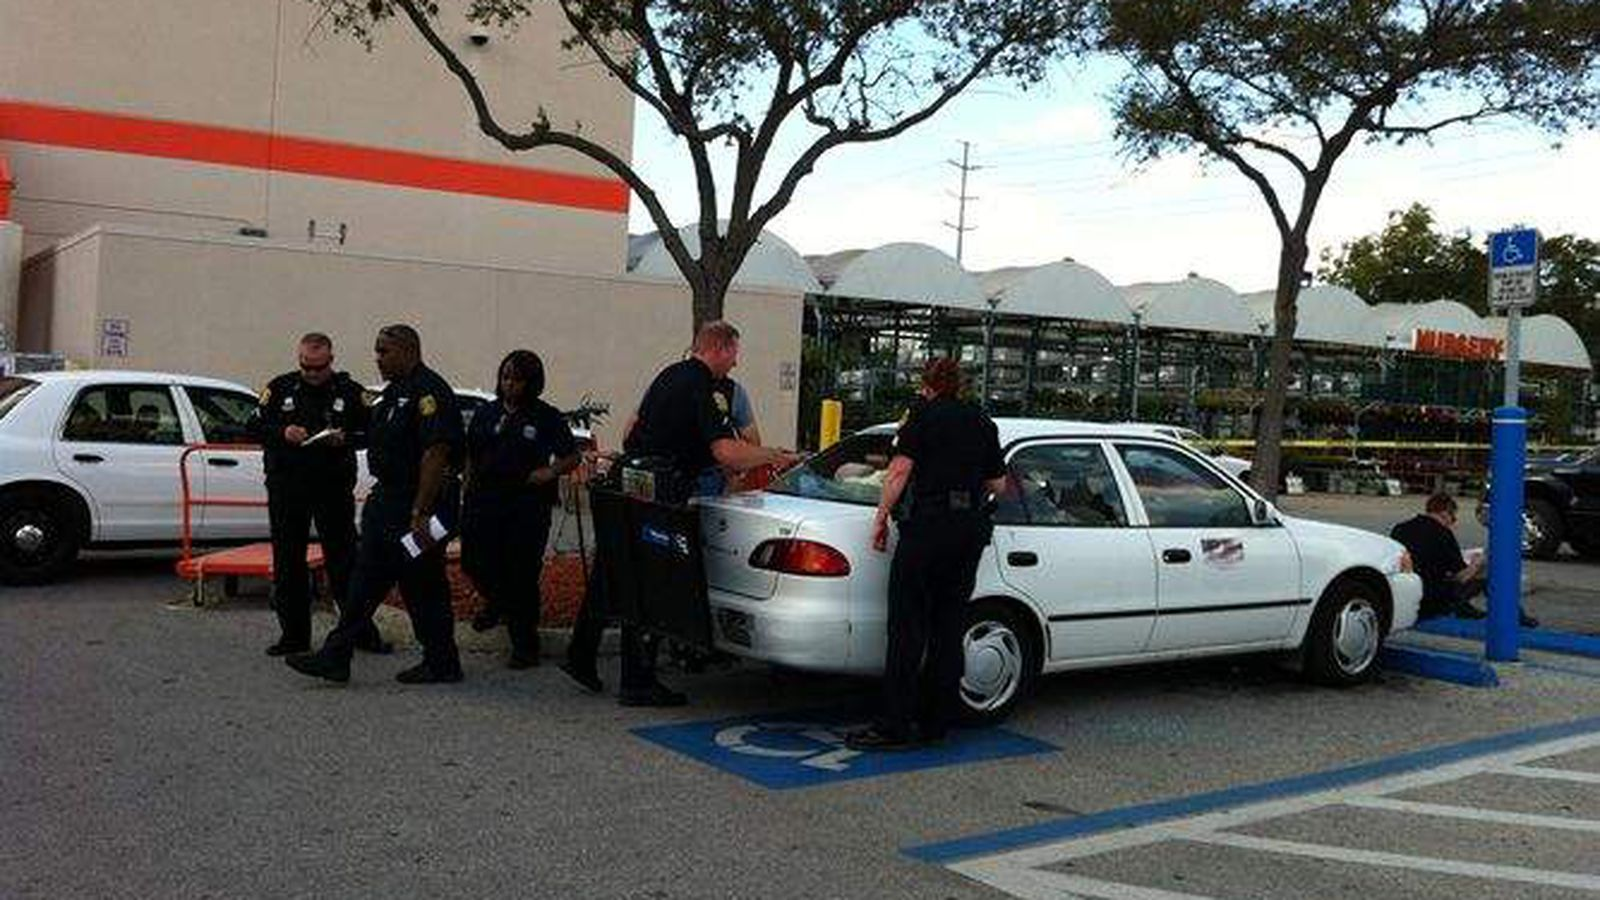 Fight Over Parking Escalates To Gunfire At Home Depot